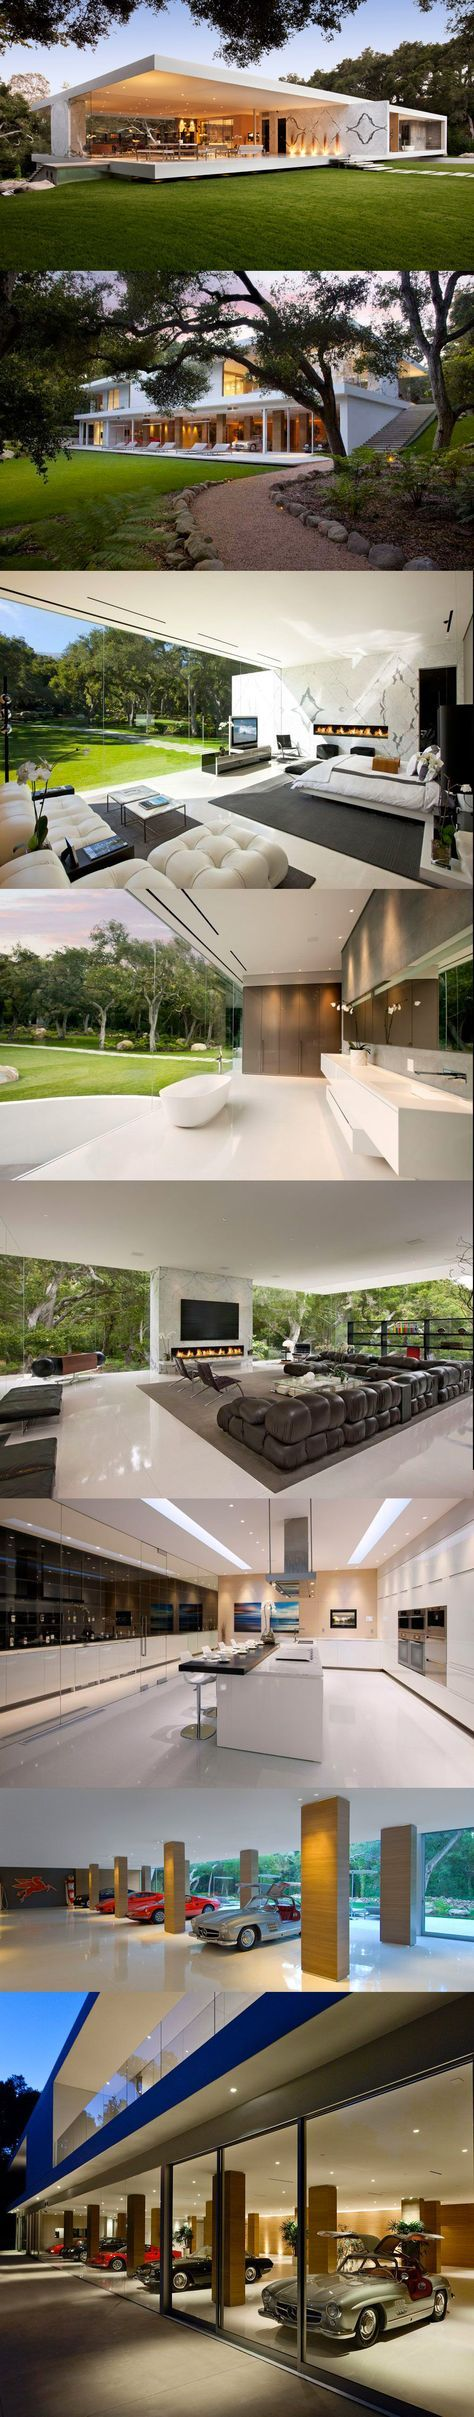 #Architecture / The Glass Pavilion by Steve Hermann - Gorgeous how the loadbearing walls are used in this residential house, allowing the house to be completely open.